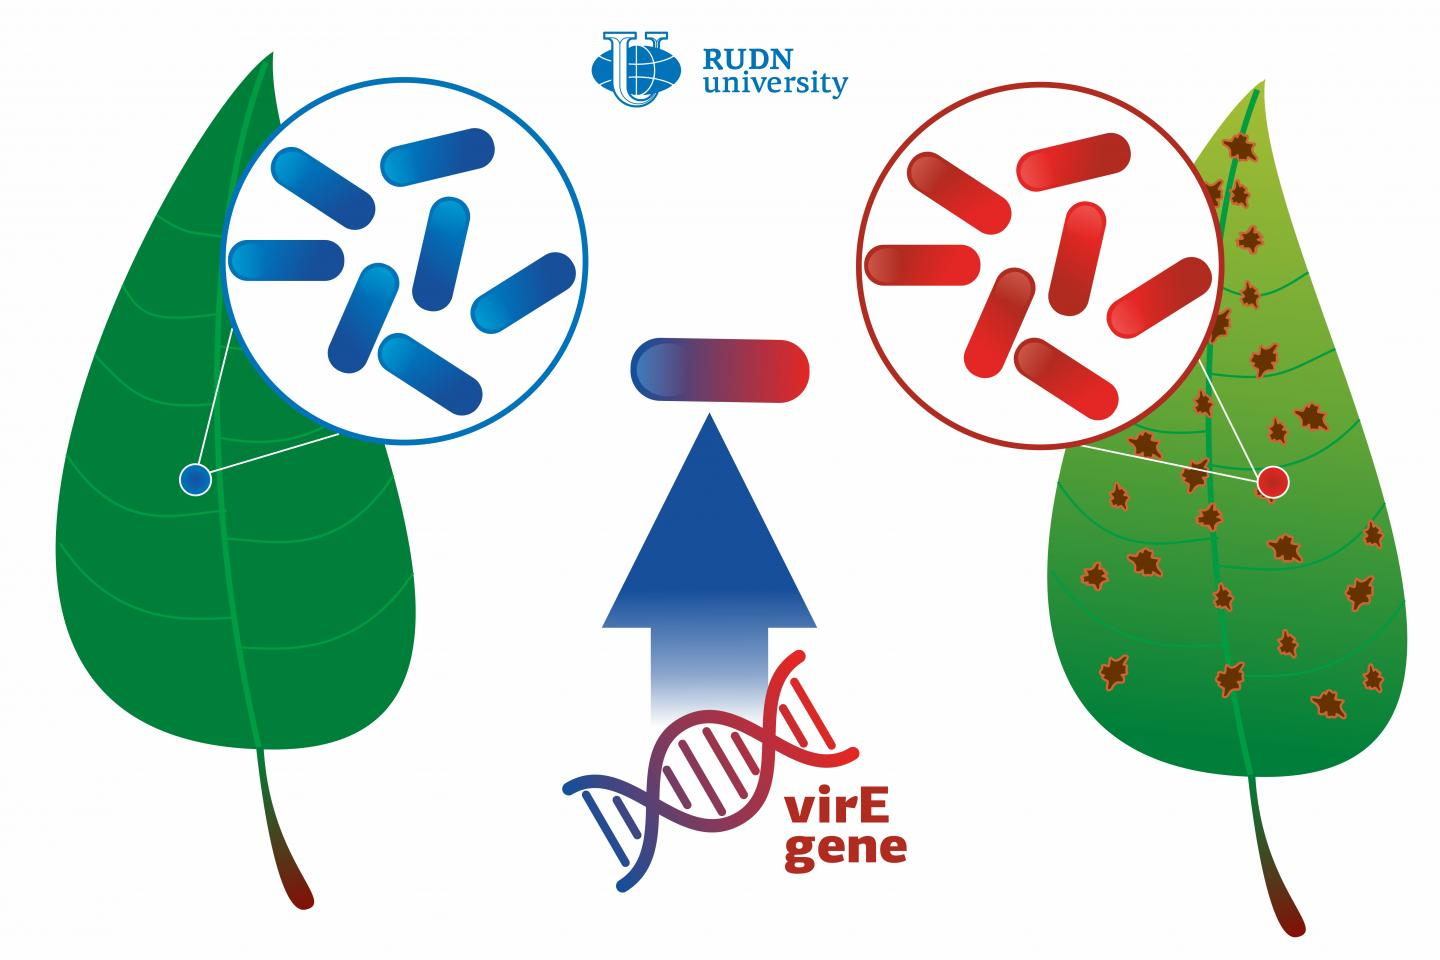 A RUDN University Biologist Described How a Harmless Bacterium Turns into a Phytopathogen